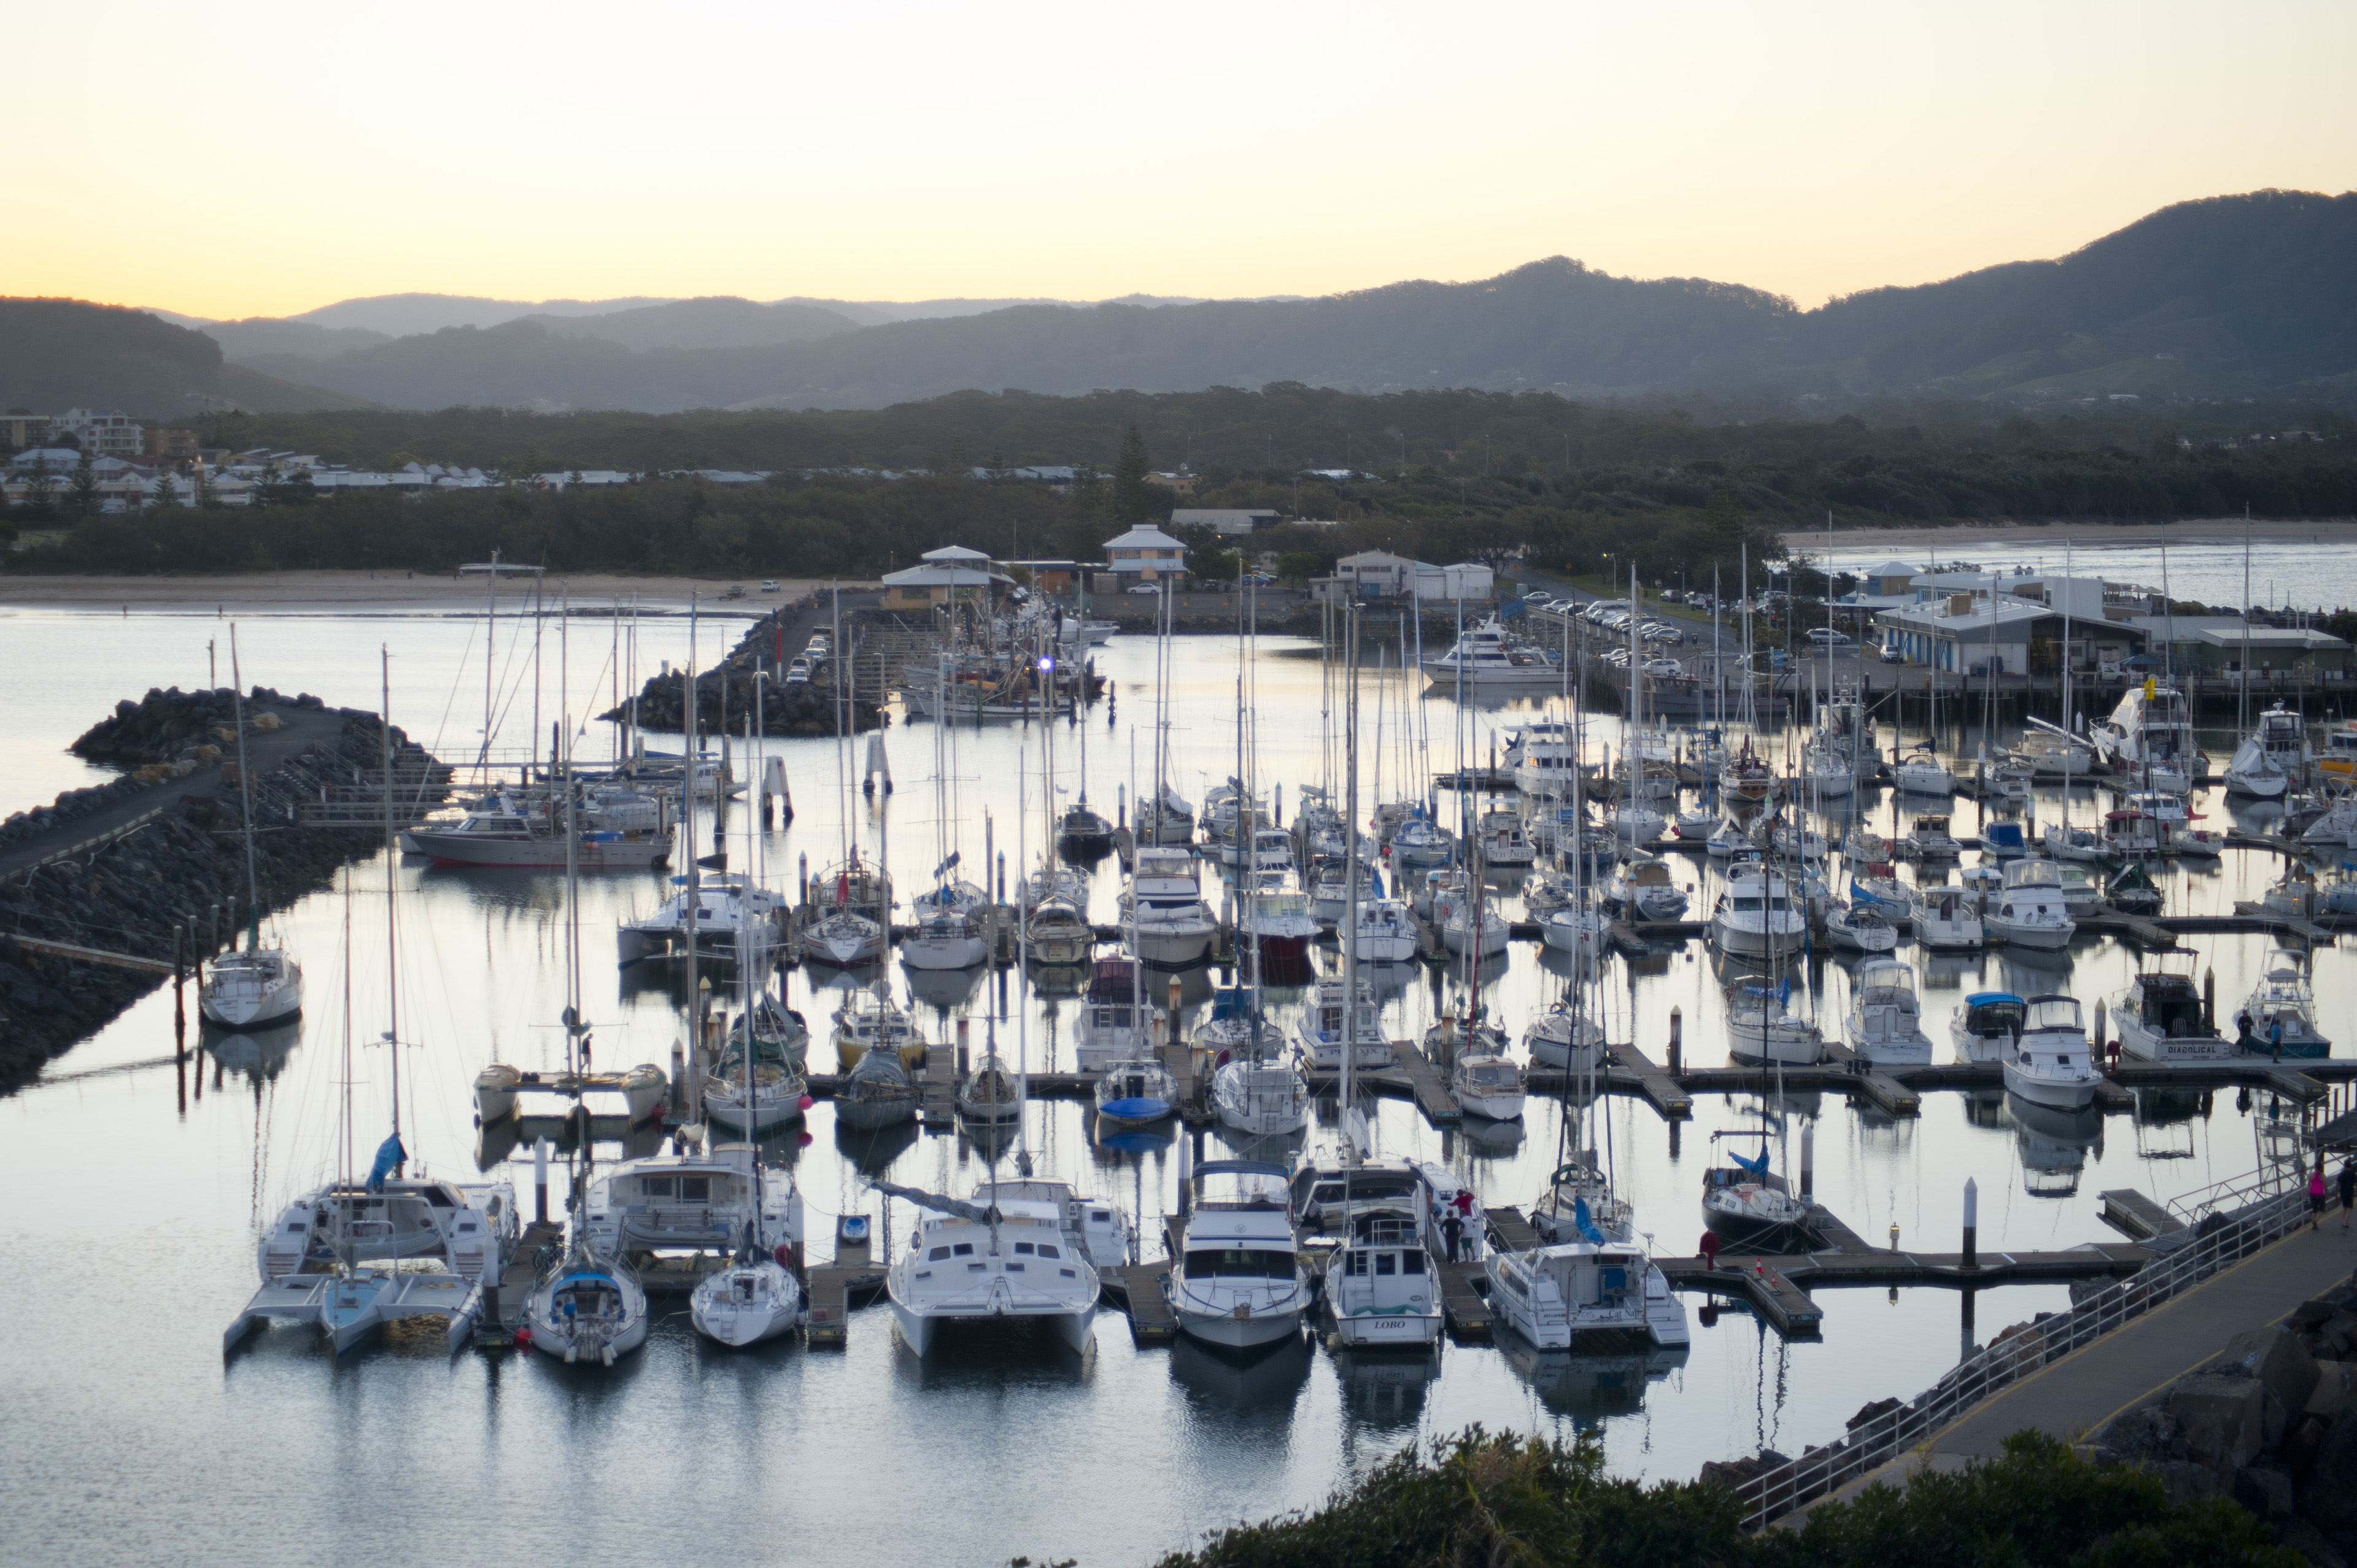 Evening view of rows of yachts moored in the calm sheltered water of a marina